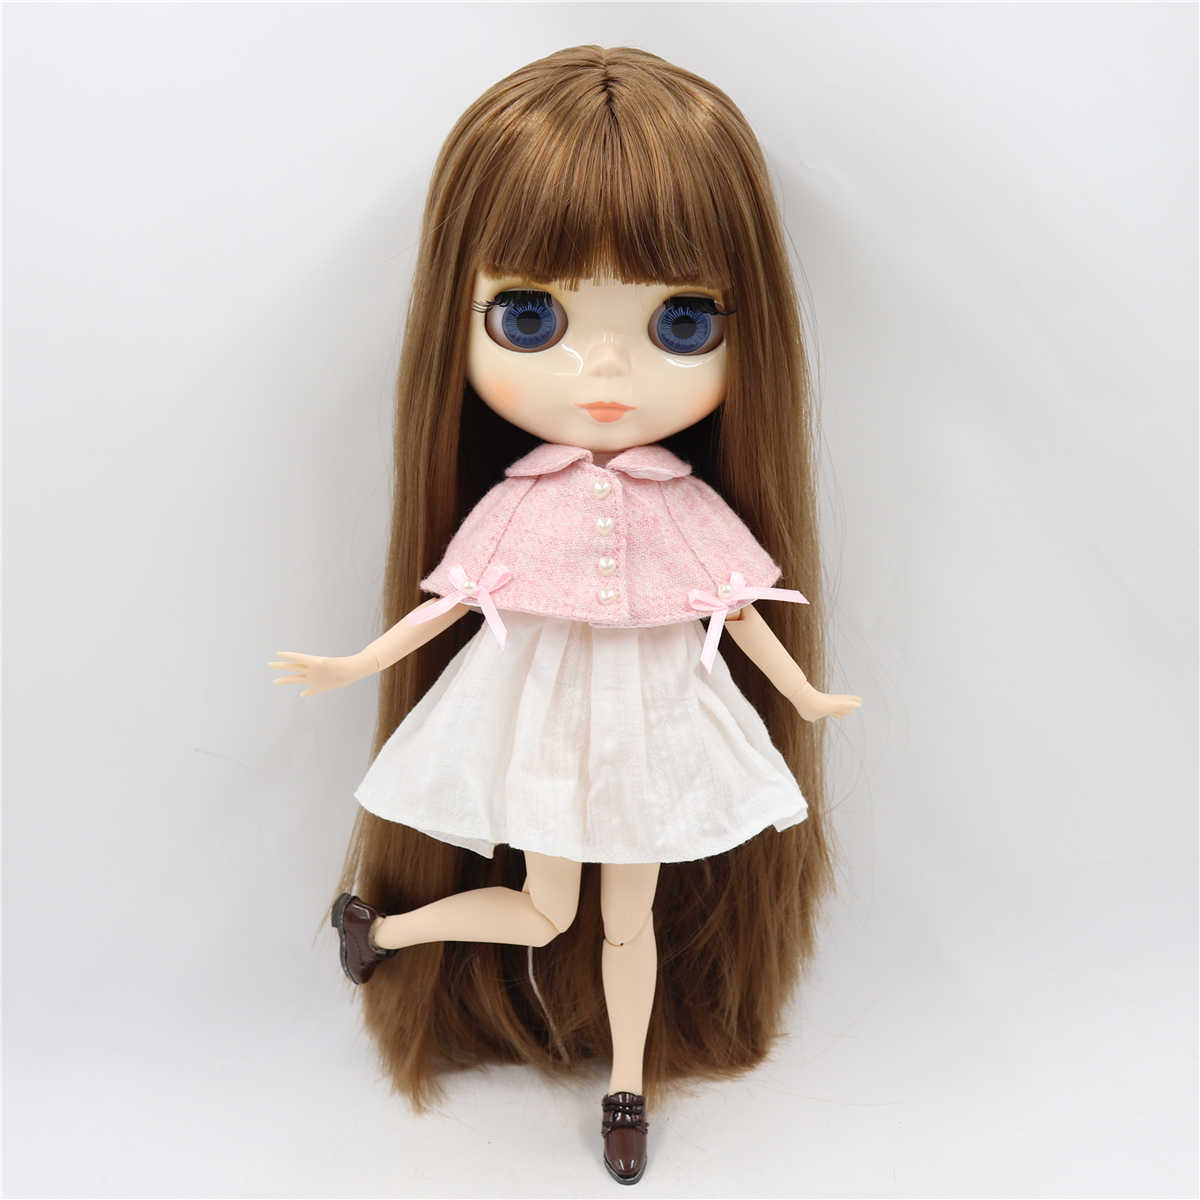 Image 4 - ICY factory blyth doll bjd toy joint body white skin shiny face doll 1/6 30cm girl gift on sale special offerDolls   -